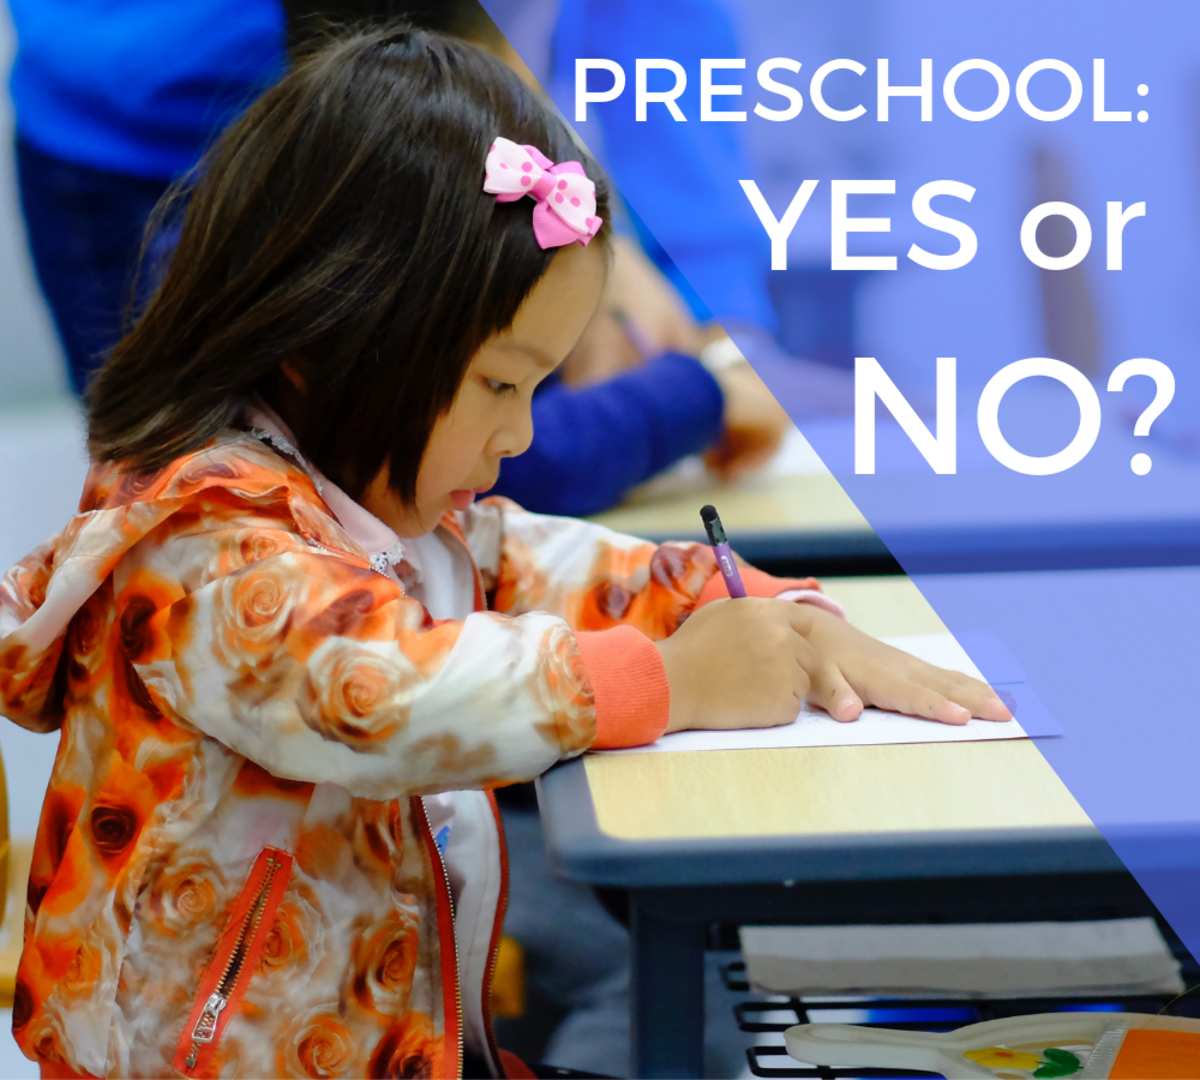 Why You Shouldn't Send a Child to Preschool: A Teacher Explains